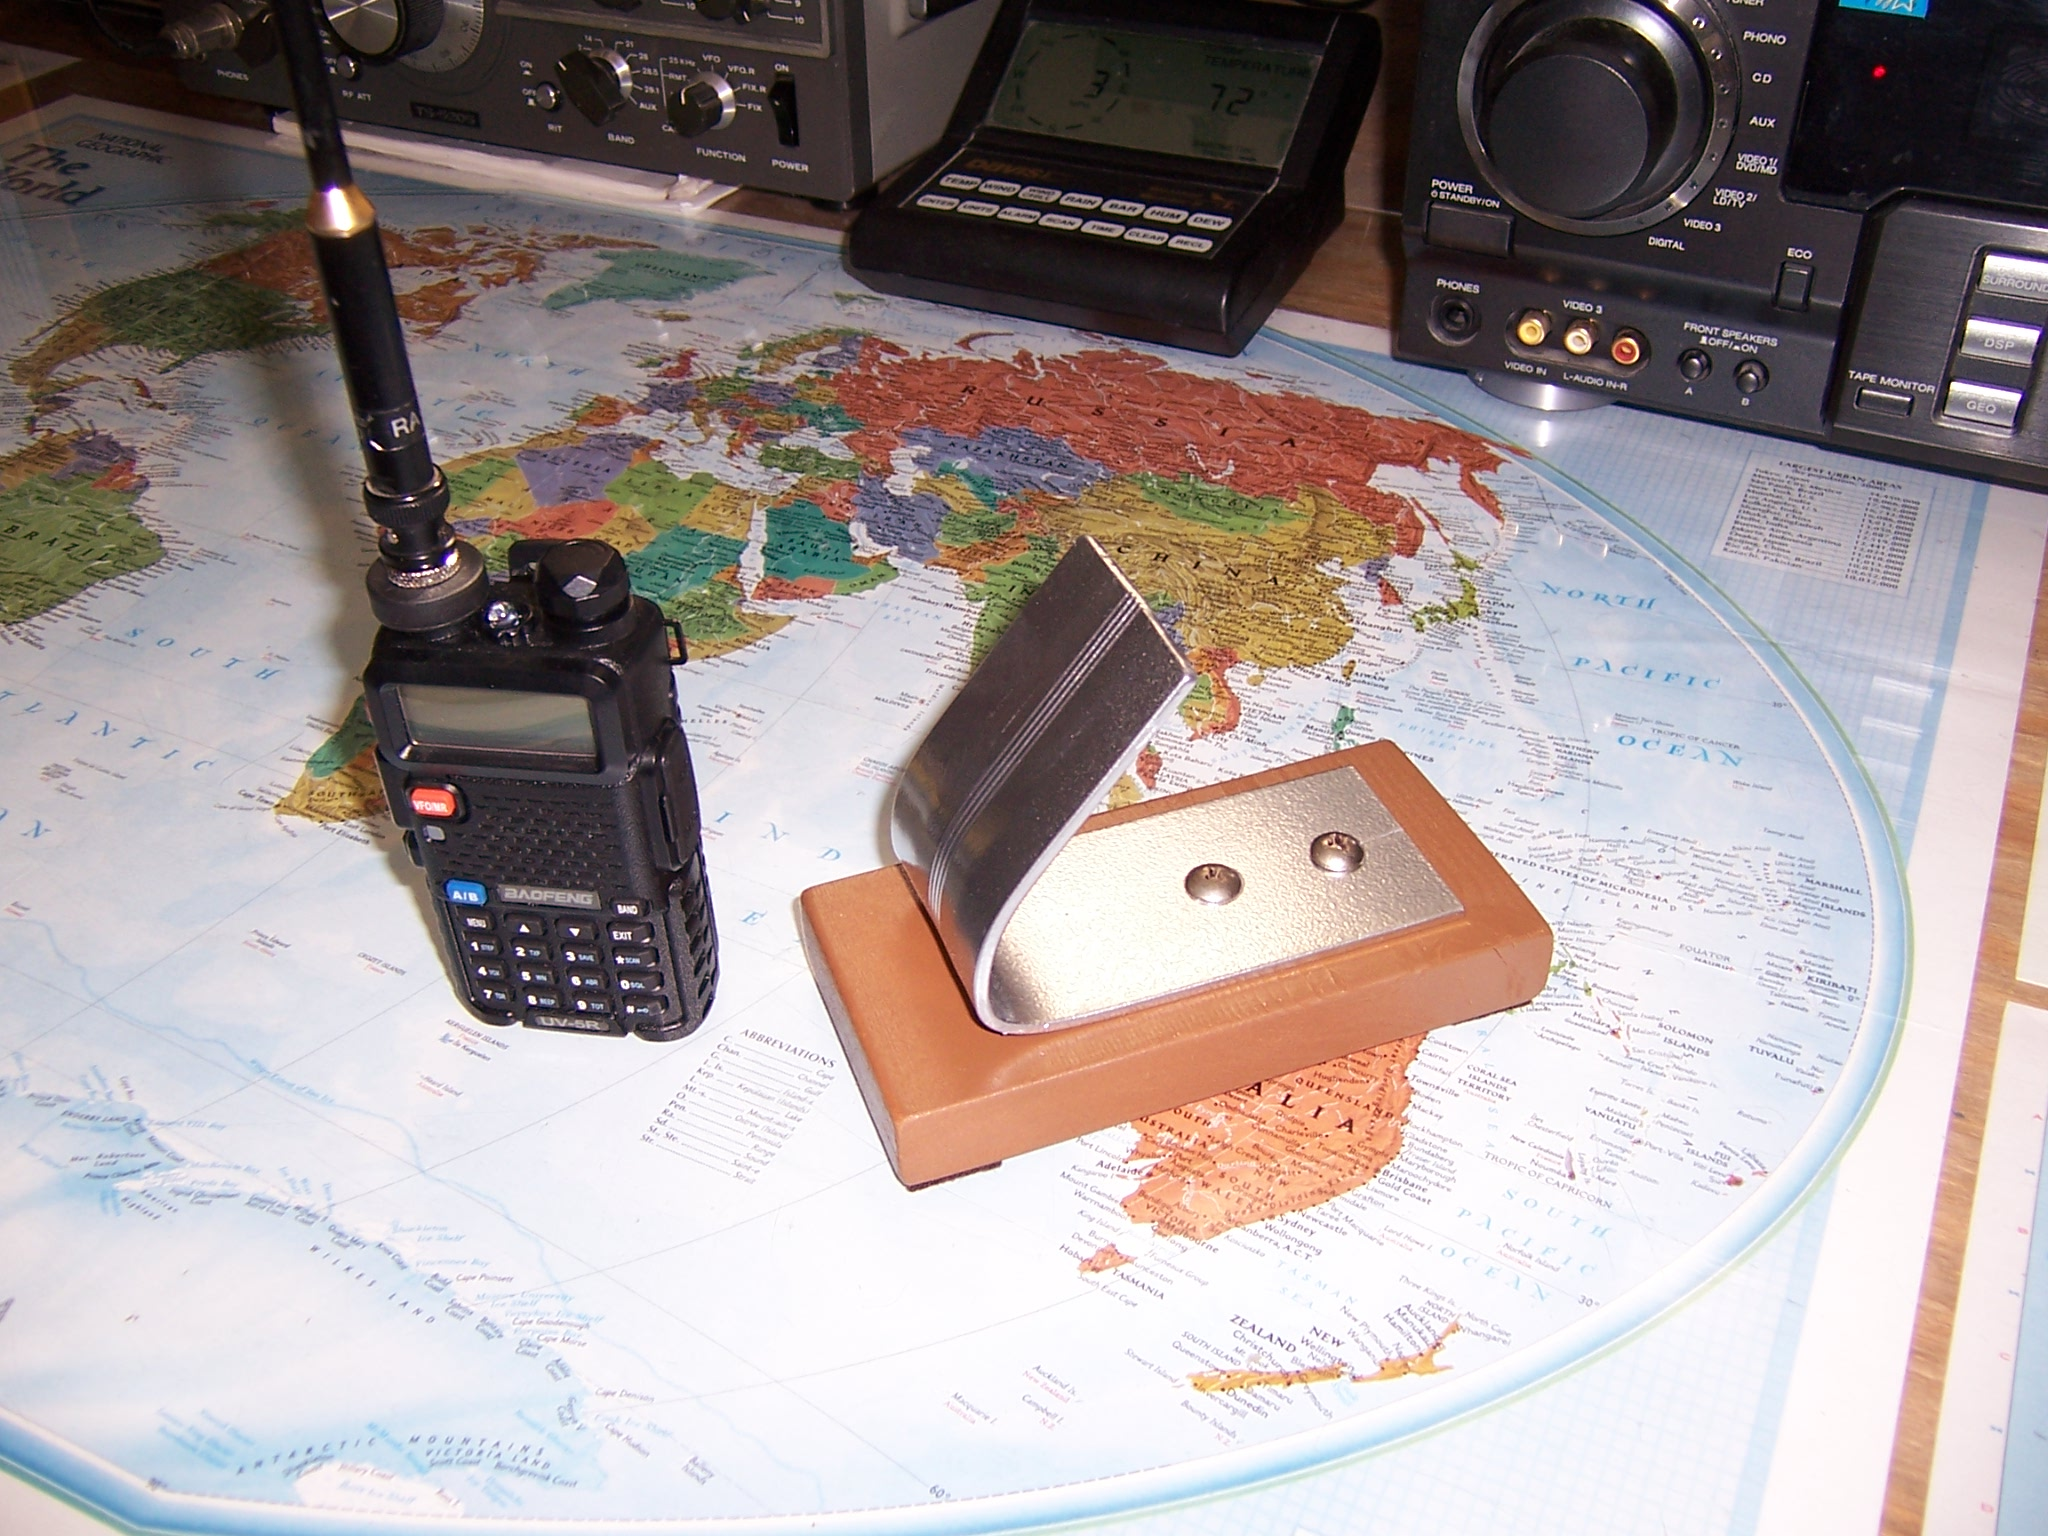 Desk Stand For A Little Ham Radio (Baofeng UV-5R)